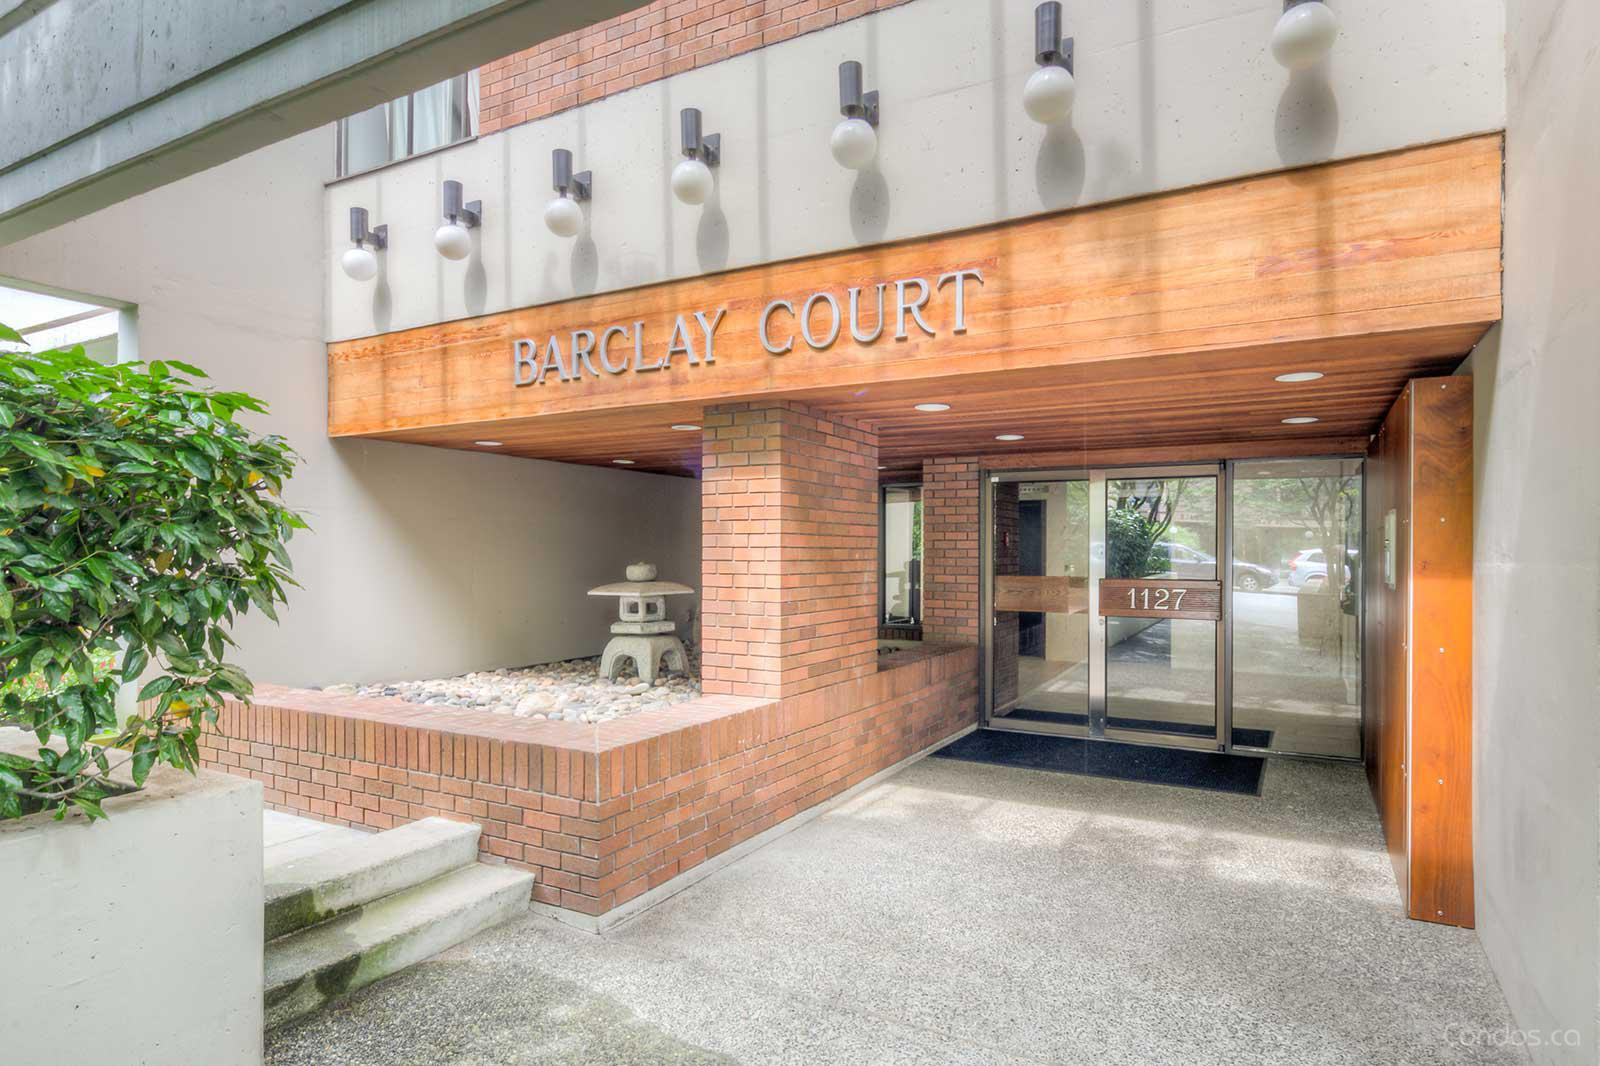 Barclay Court at 1127 Barclay St, Vancouver 0